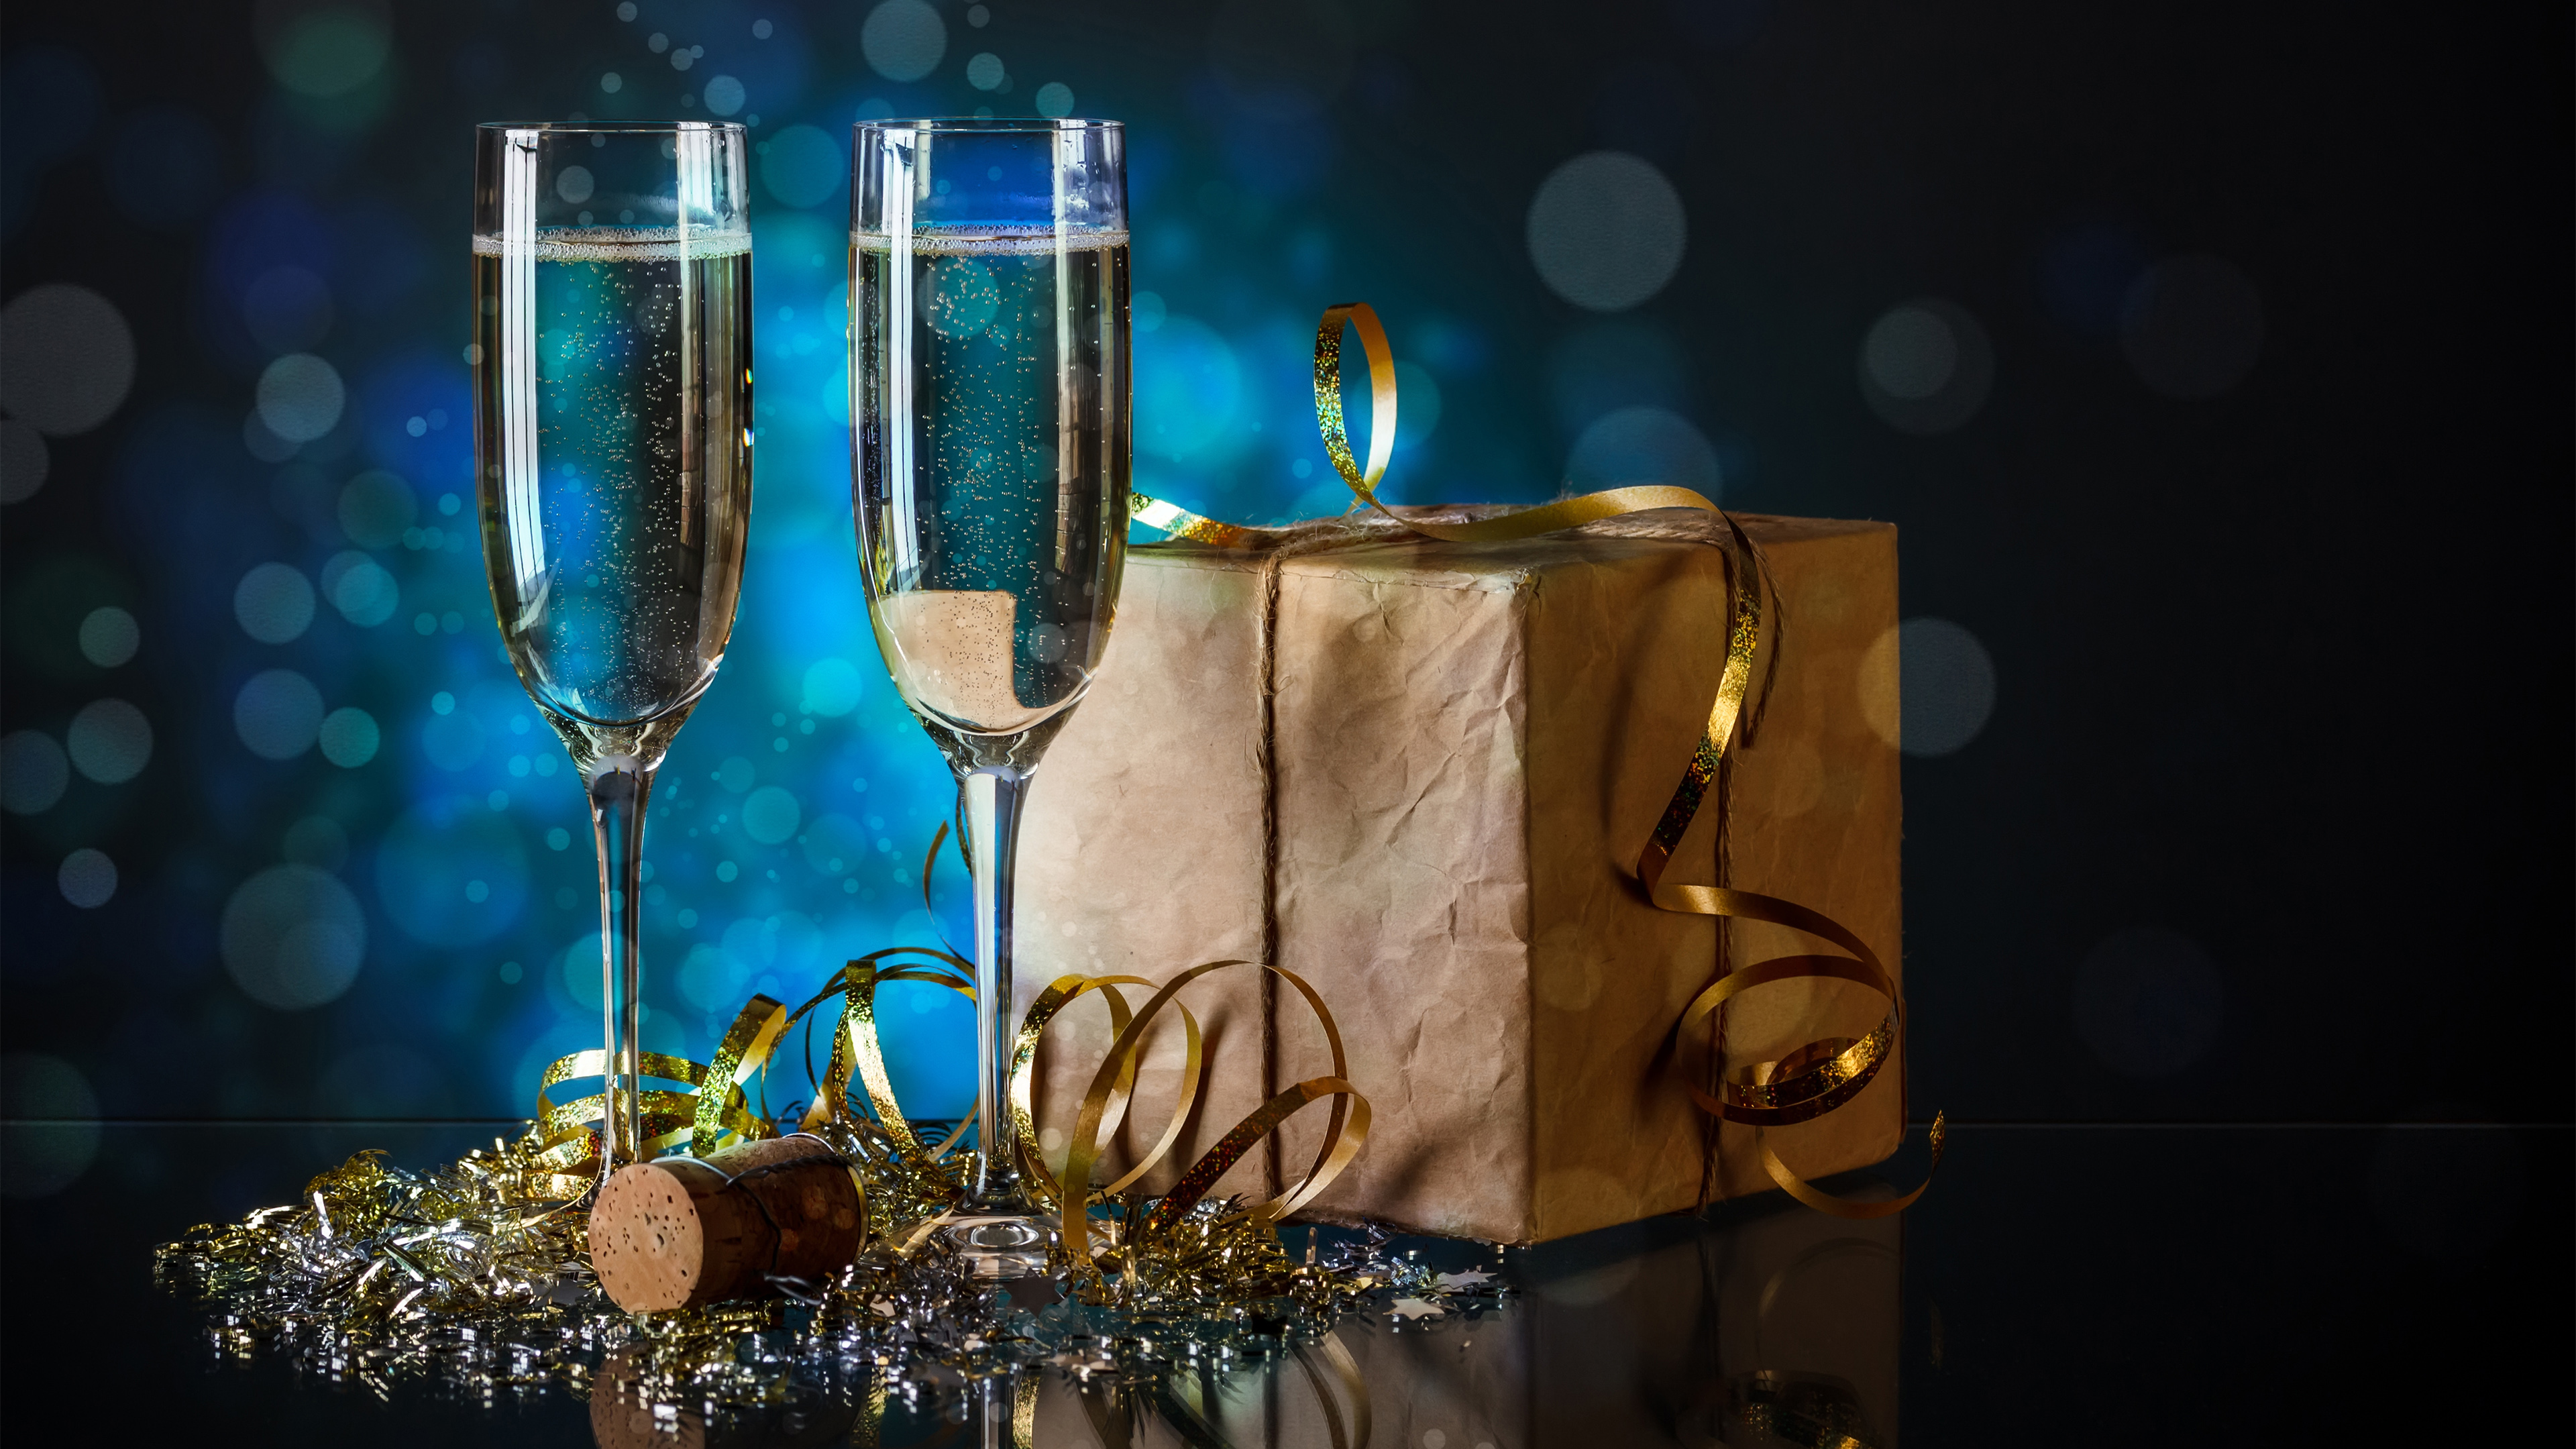 new year eve party champagne and gift box 4k wallpaper